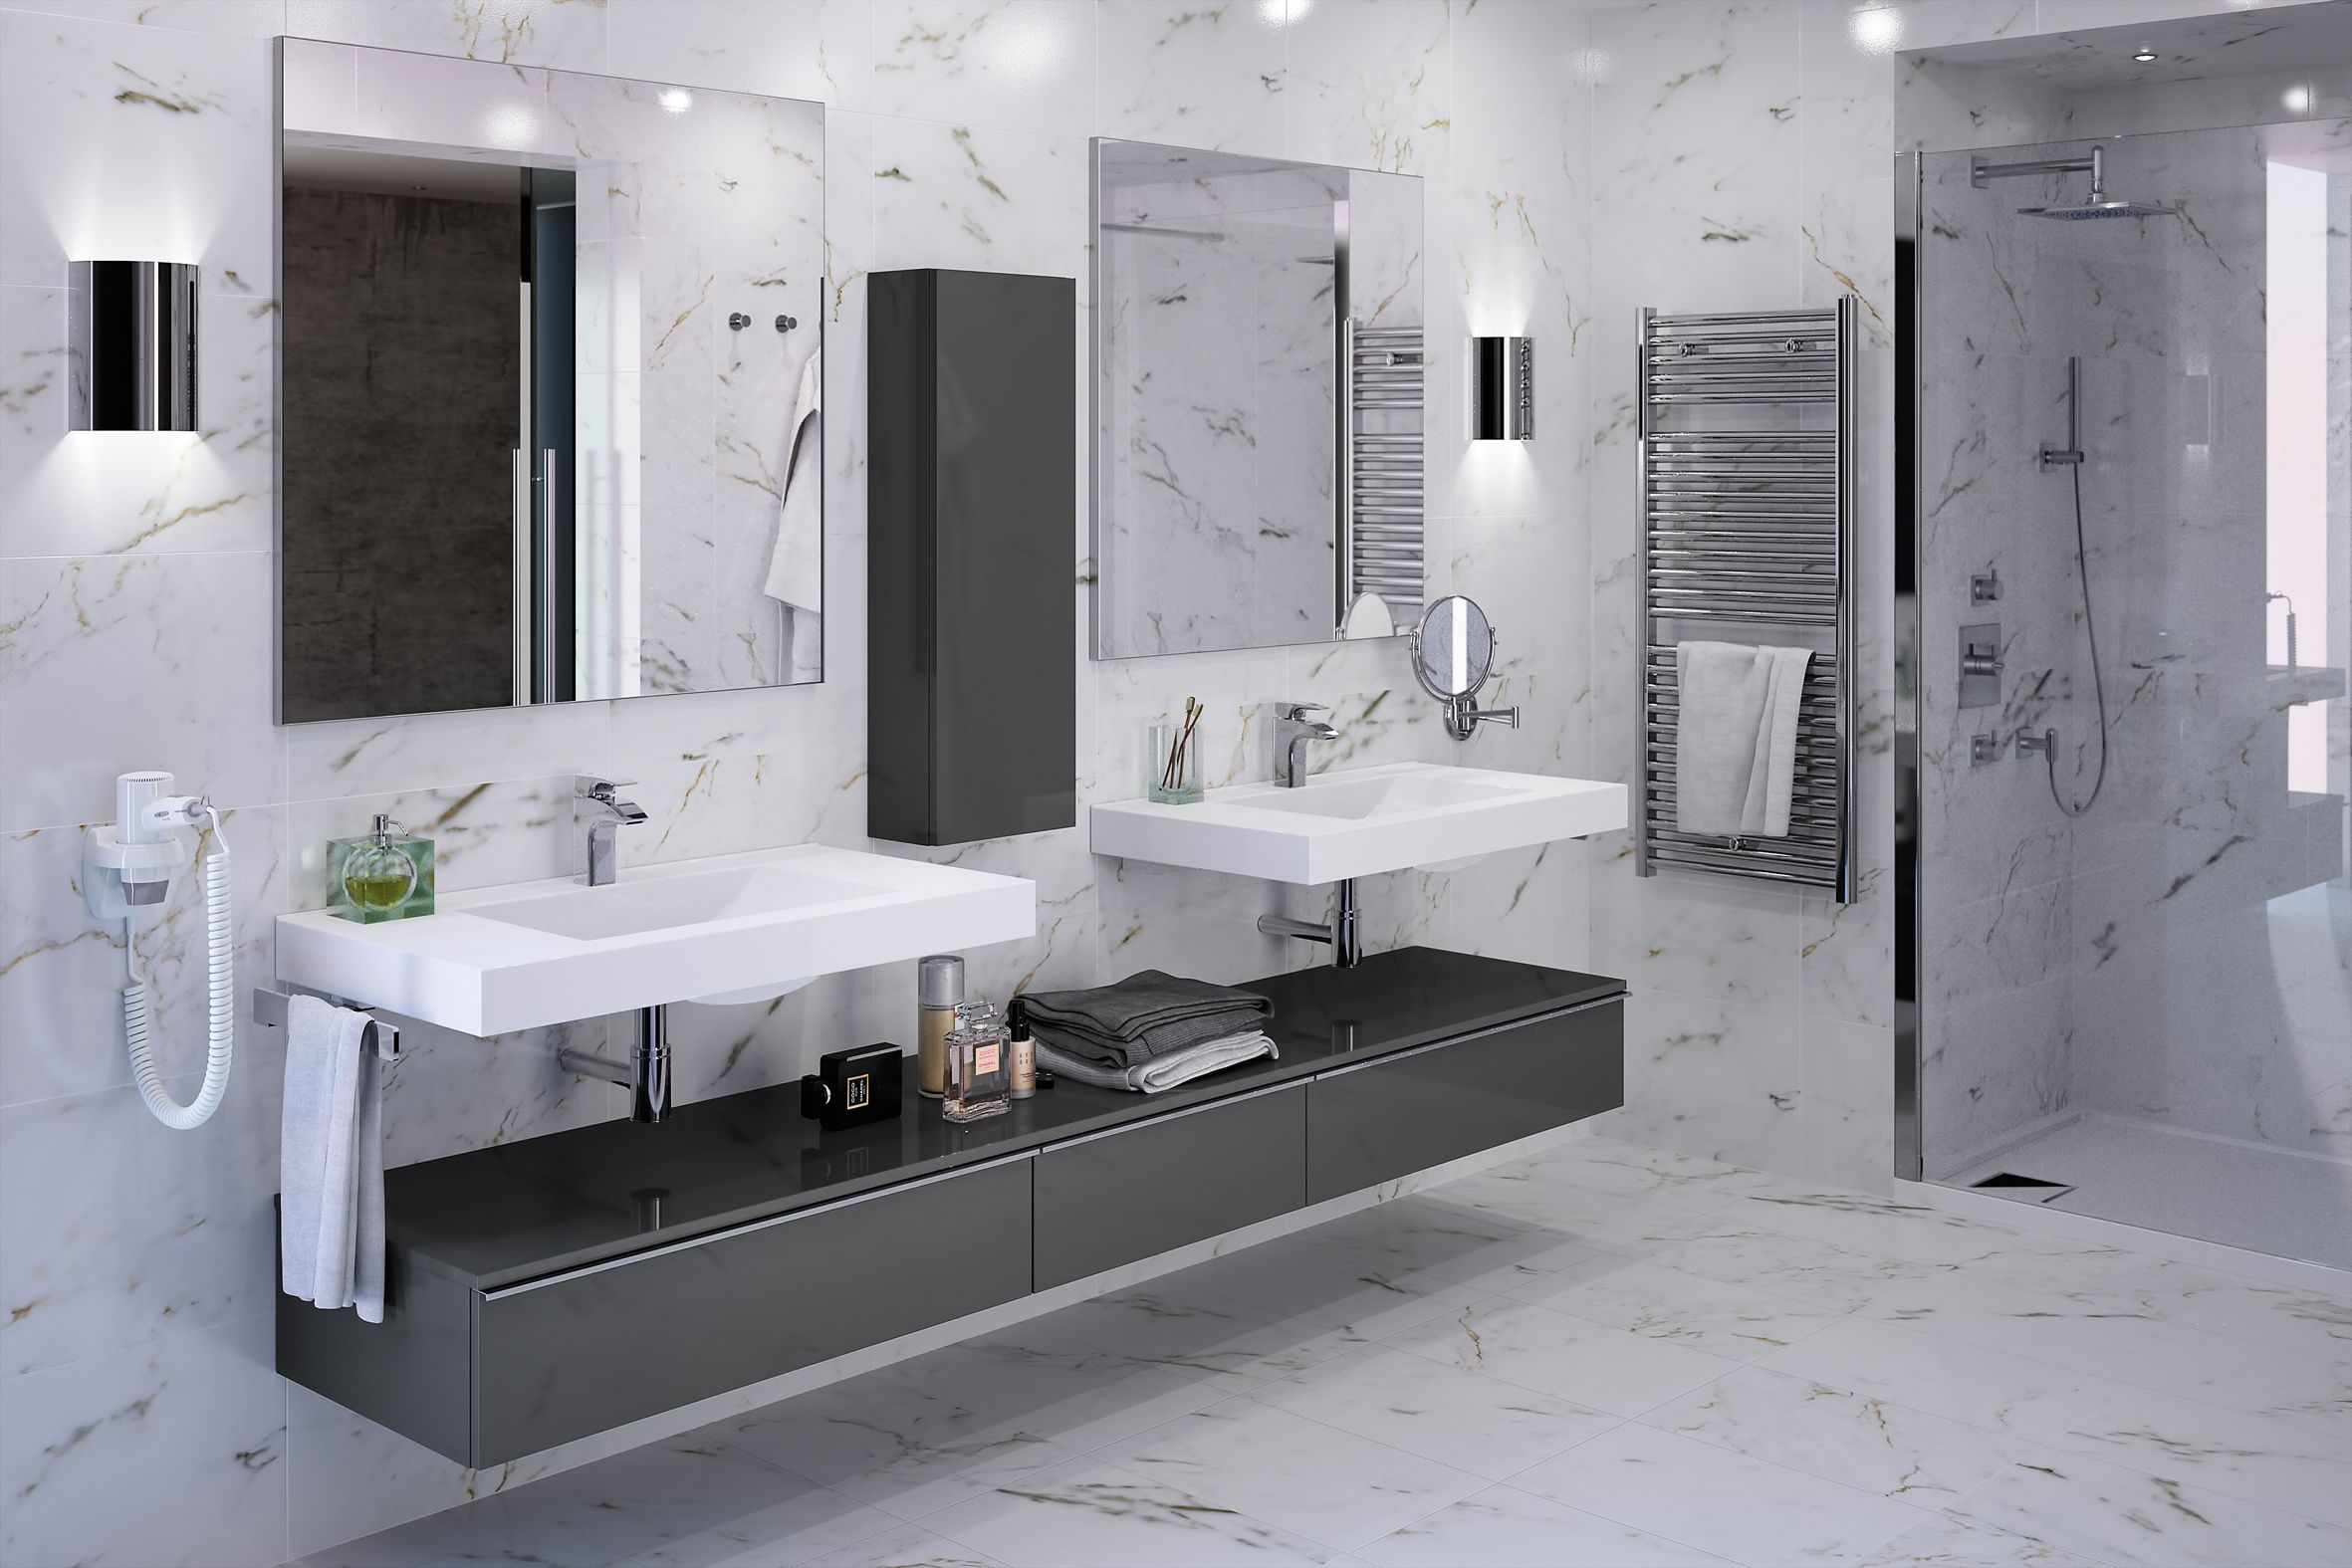 meubles de salle de bain cedam gamme extenso sur mesure marbre meuble gris basalte. Black Bedroom Furniture Sets. Home Design Ideas